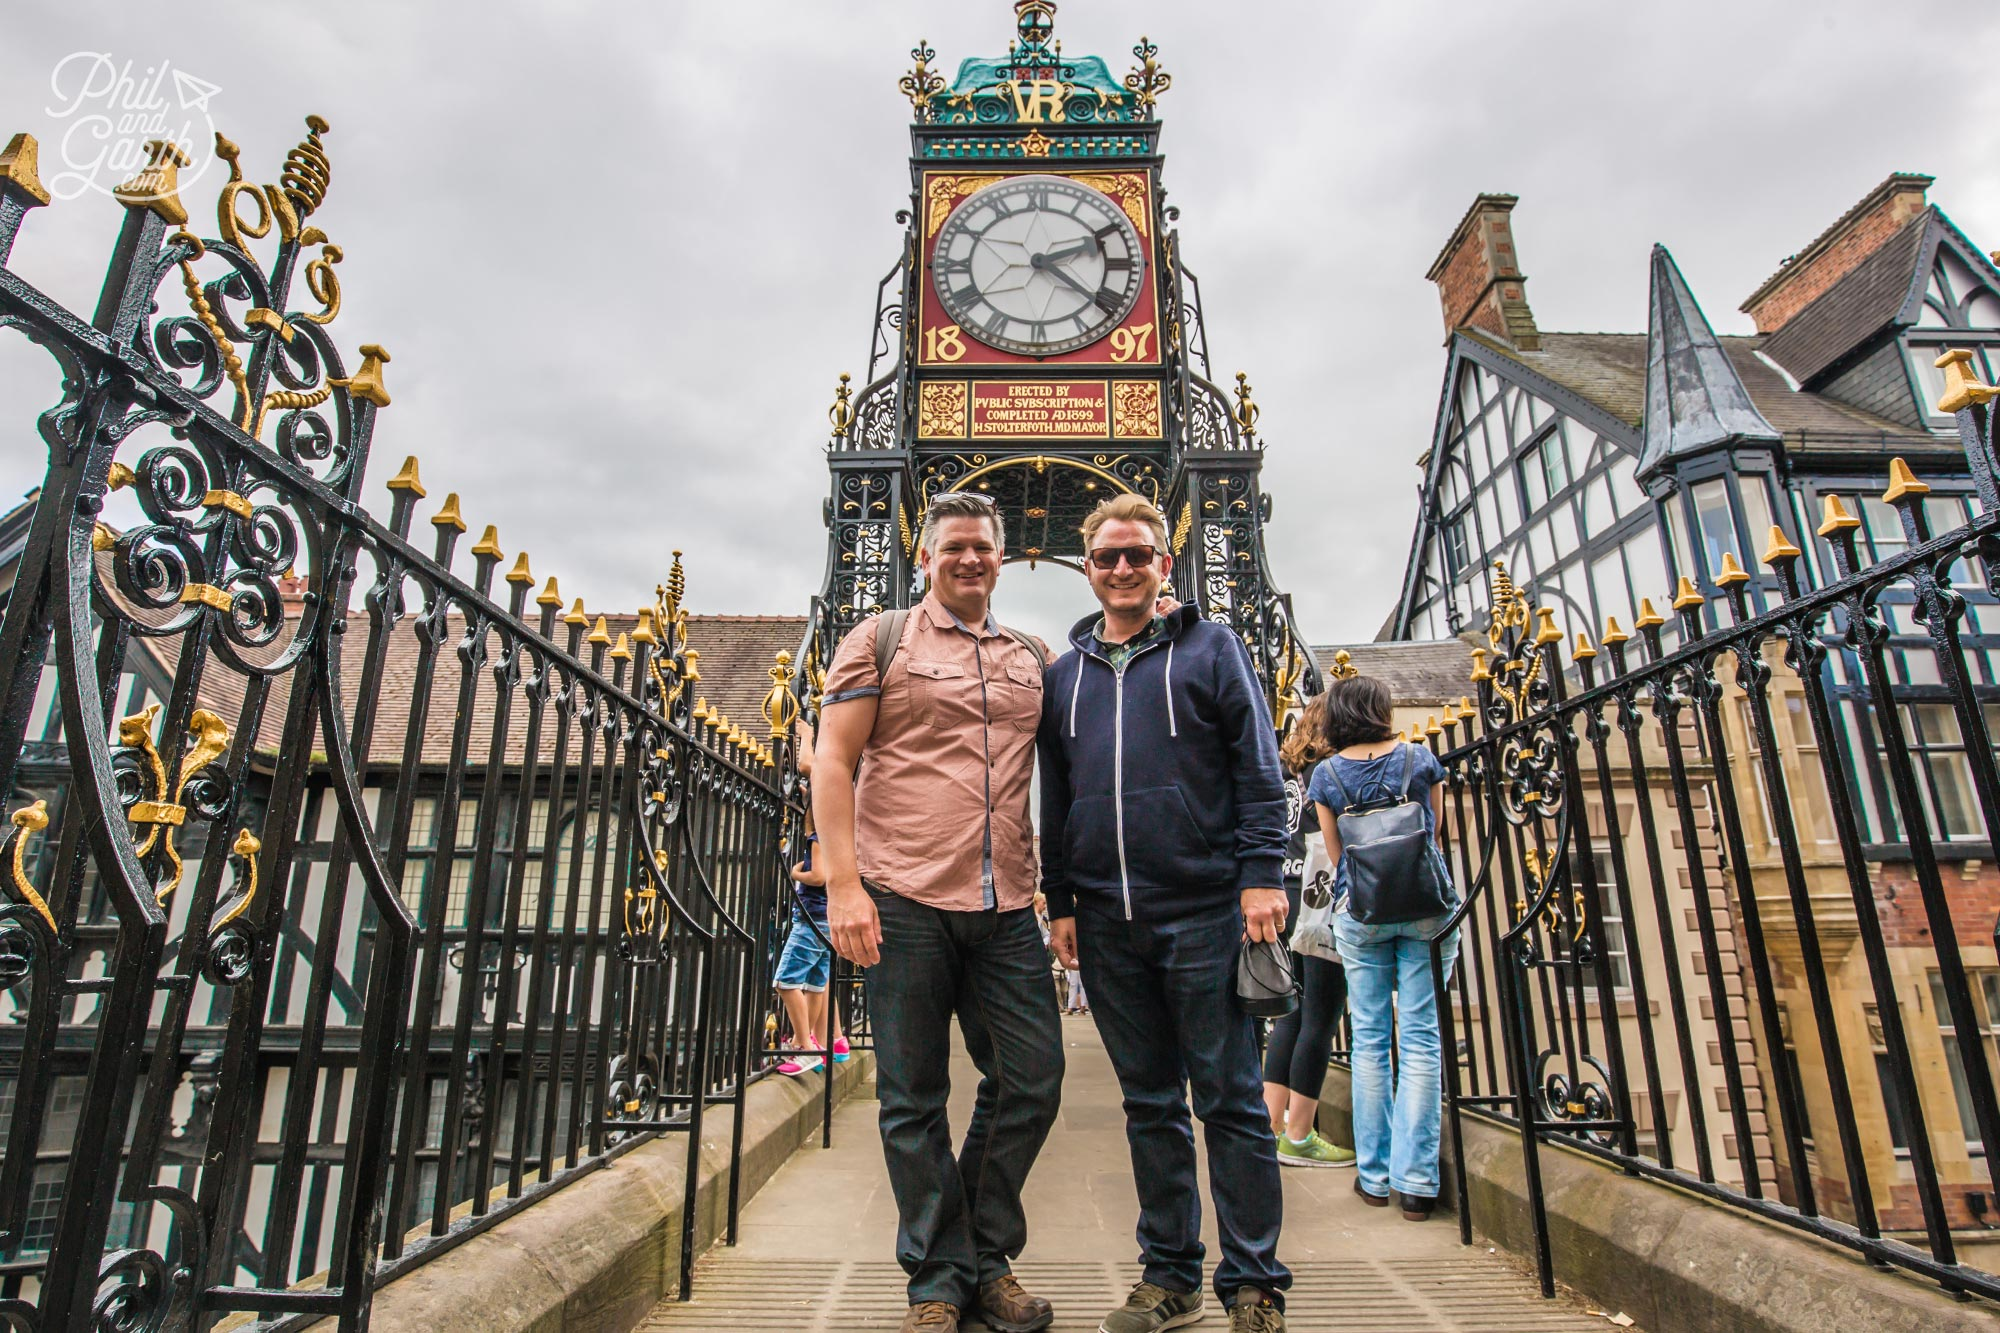 Phil and Garth at Chester's iconic Eastgate Clock